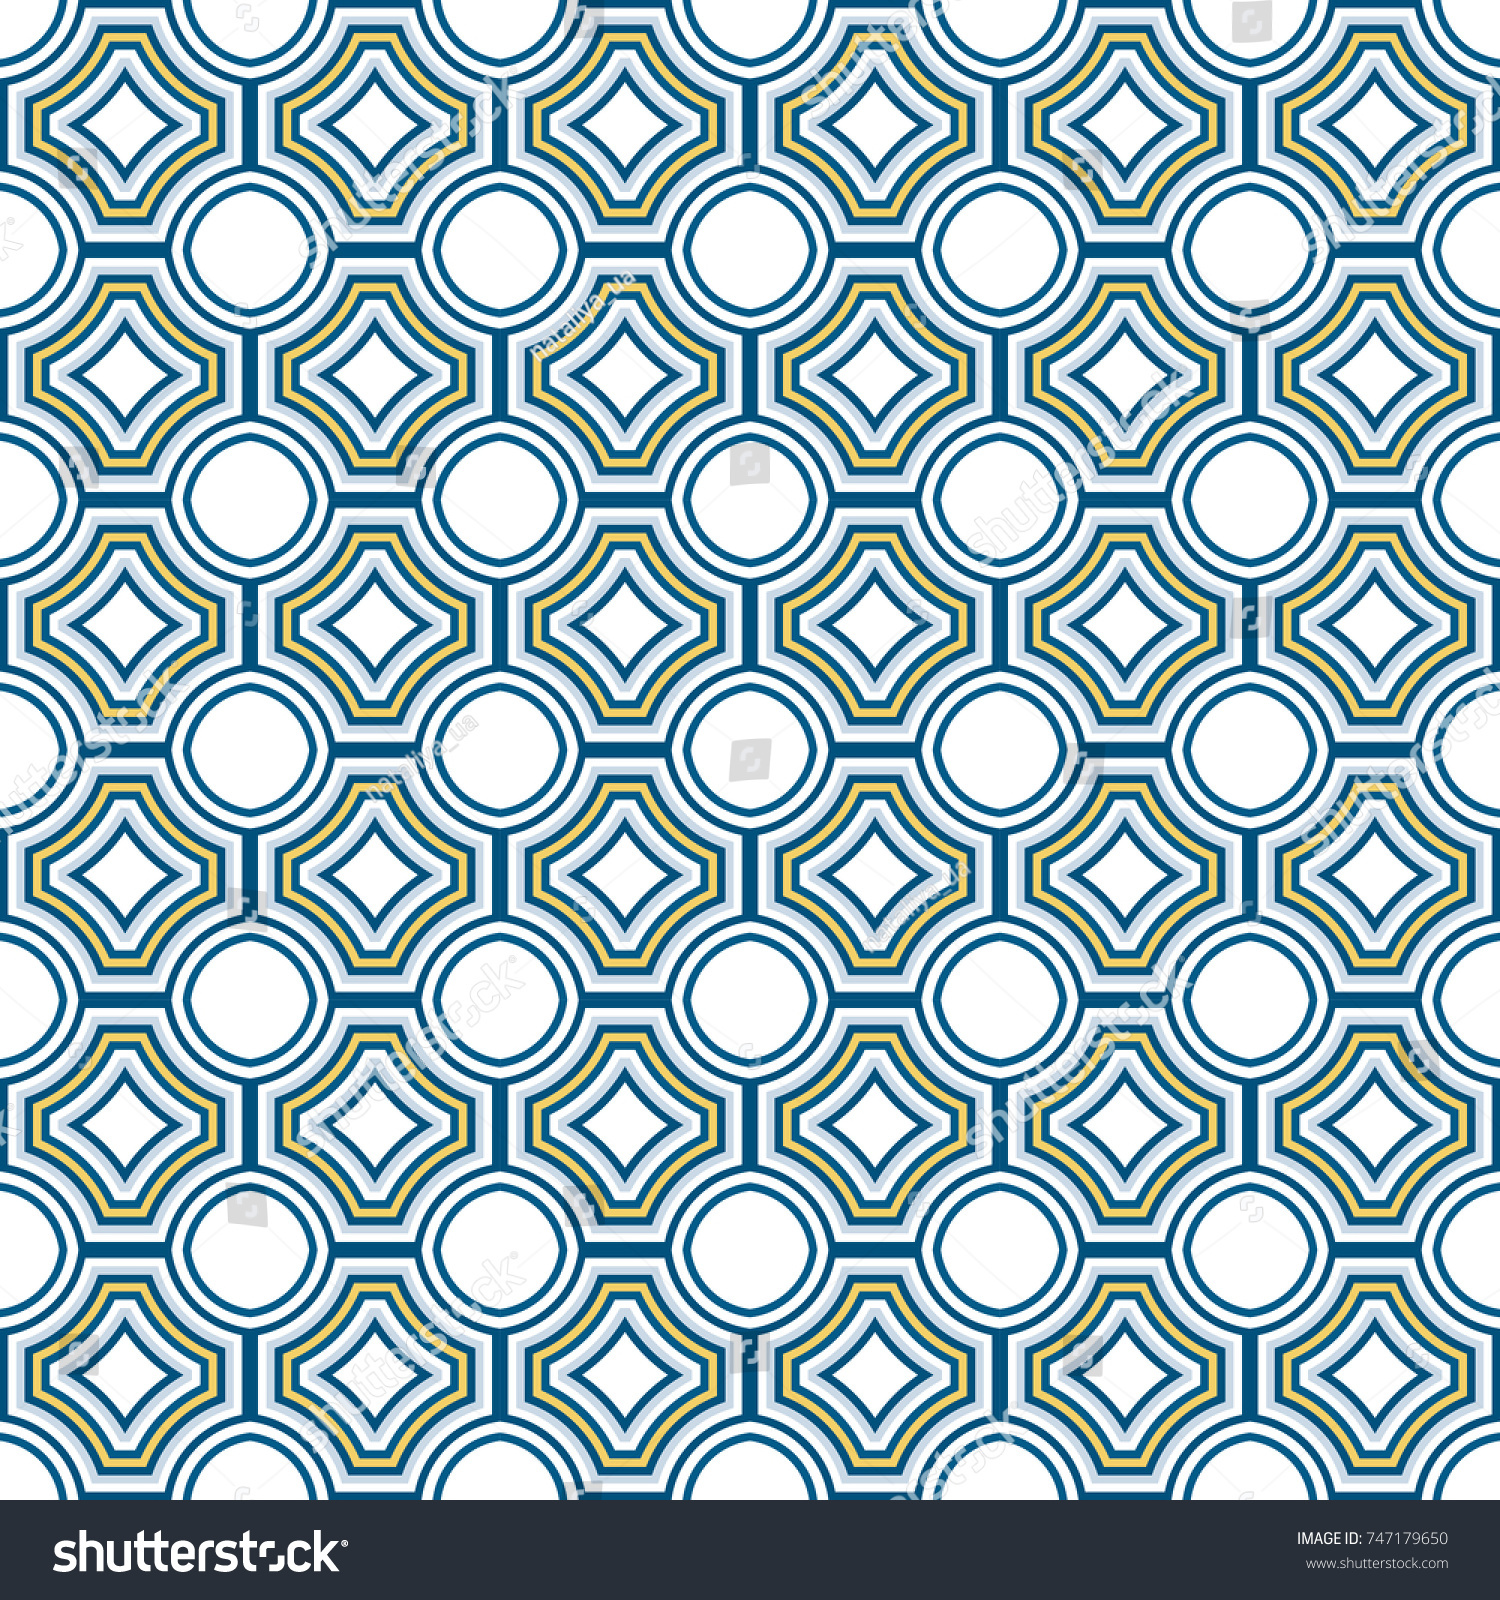 Background Texture Ancient Tile Pattern Seamless Retro Stock Vector ...